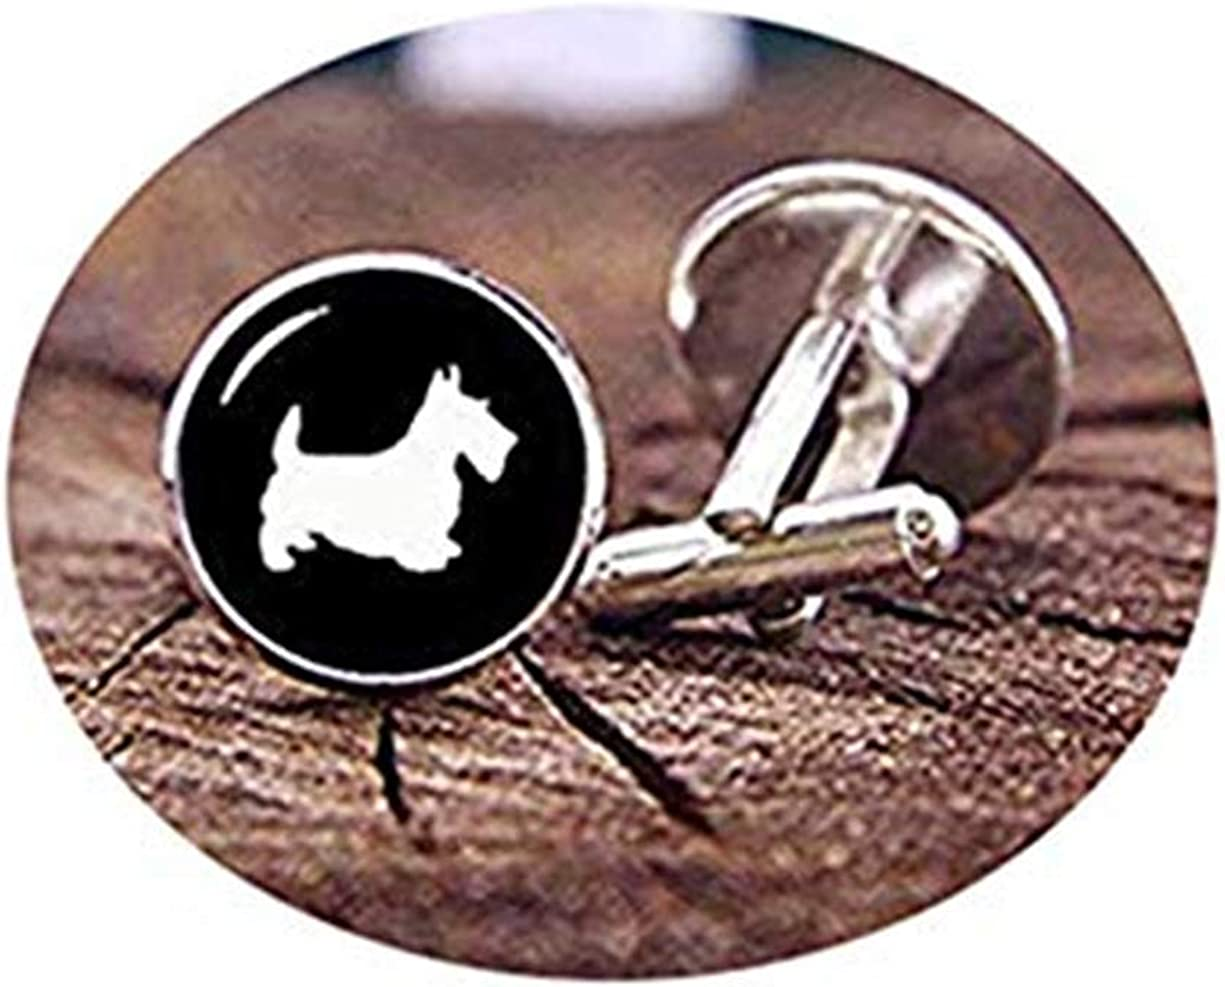 Death Devil Art Picture Cuff Links,Scottish Terrier Cufflinks, Tie Clips, Personalized Cuff Links, Custom Dog Cuff Links, Pet Dog Cuff Links, Wedding Cuff Links, Groom Gifts,Gift of Love